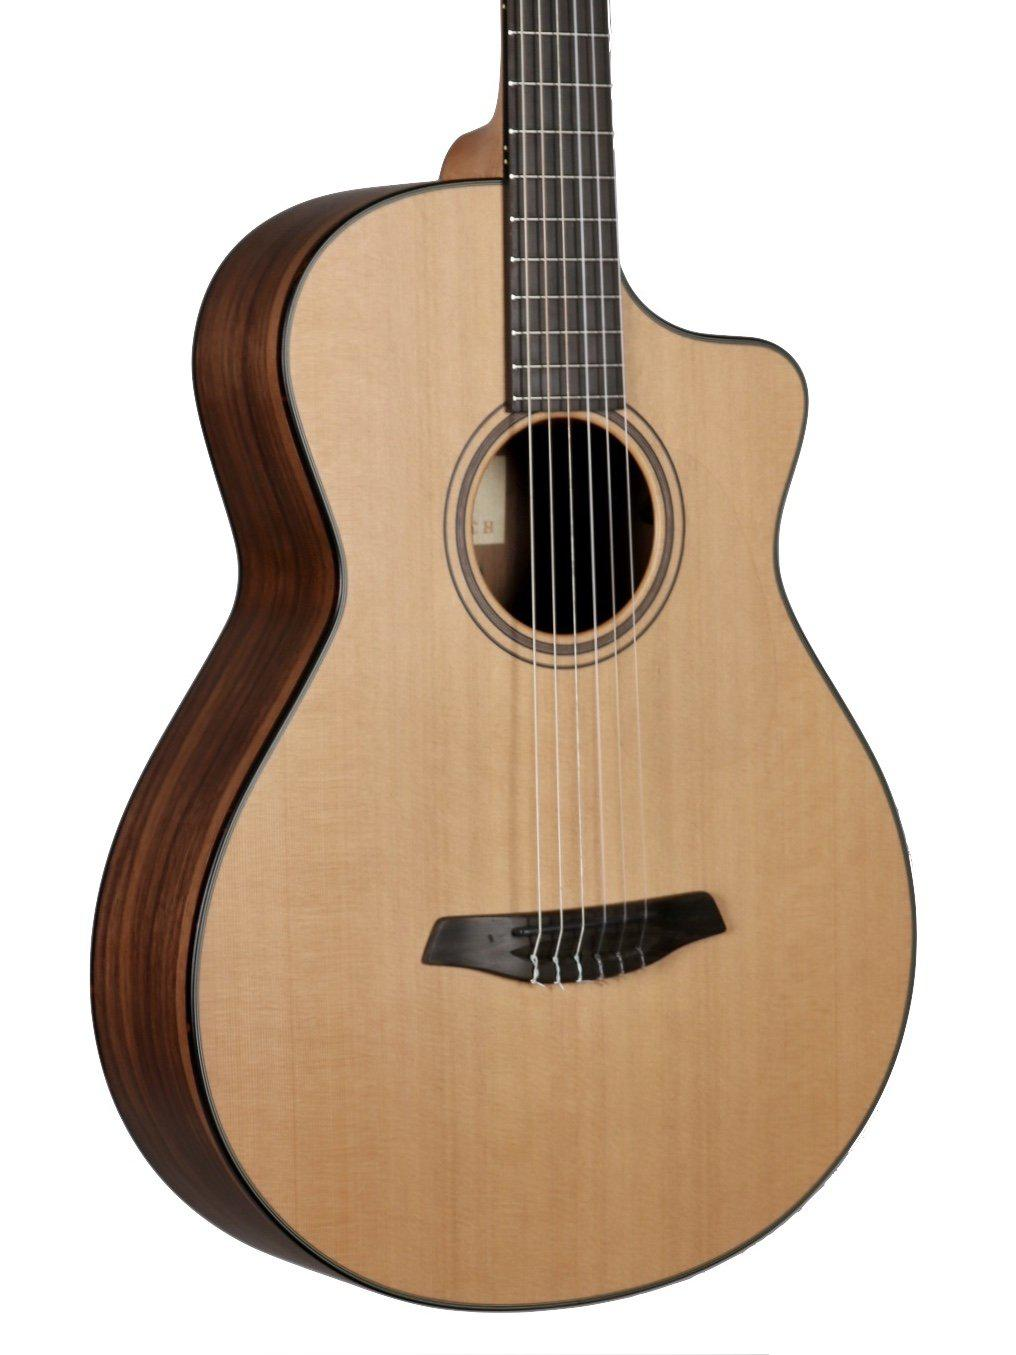 Furch Grand Nylon GNc 2 CW Cedar / Walnut #90126 - Stonebridge / Furch Guitars - Heartbreaker Guitars